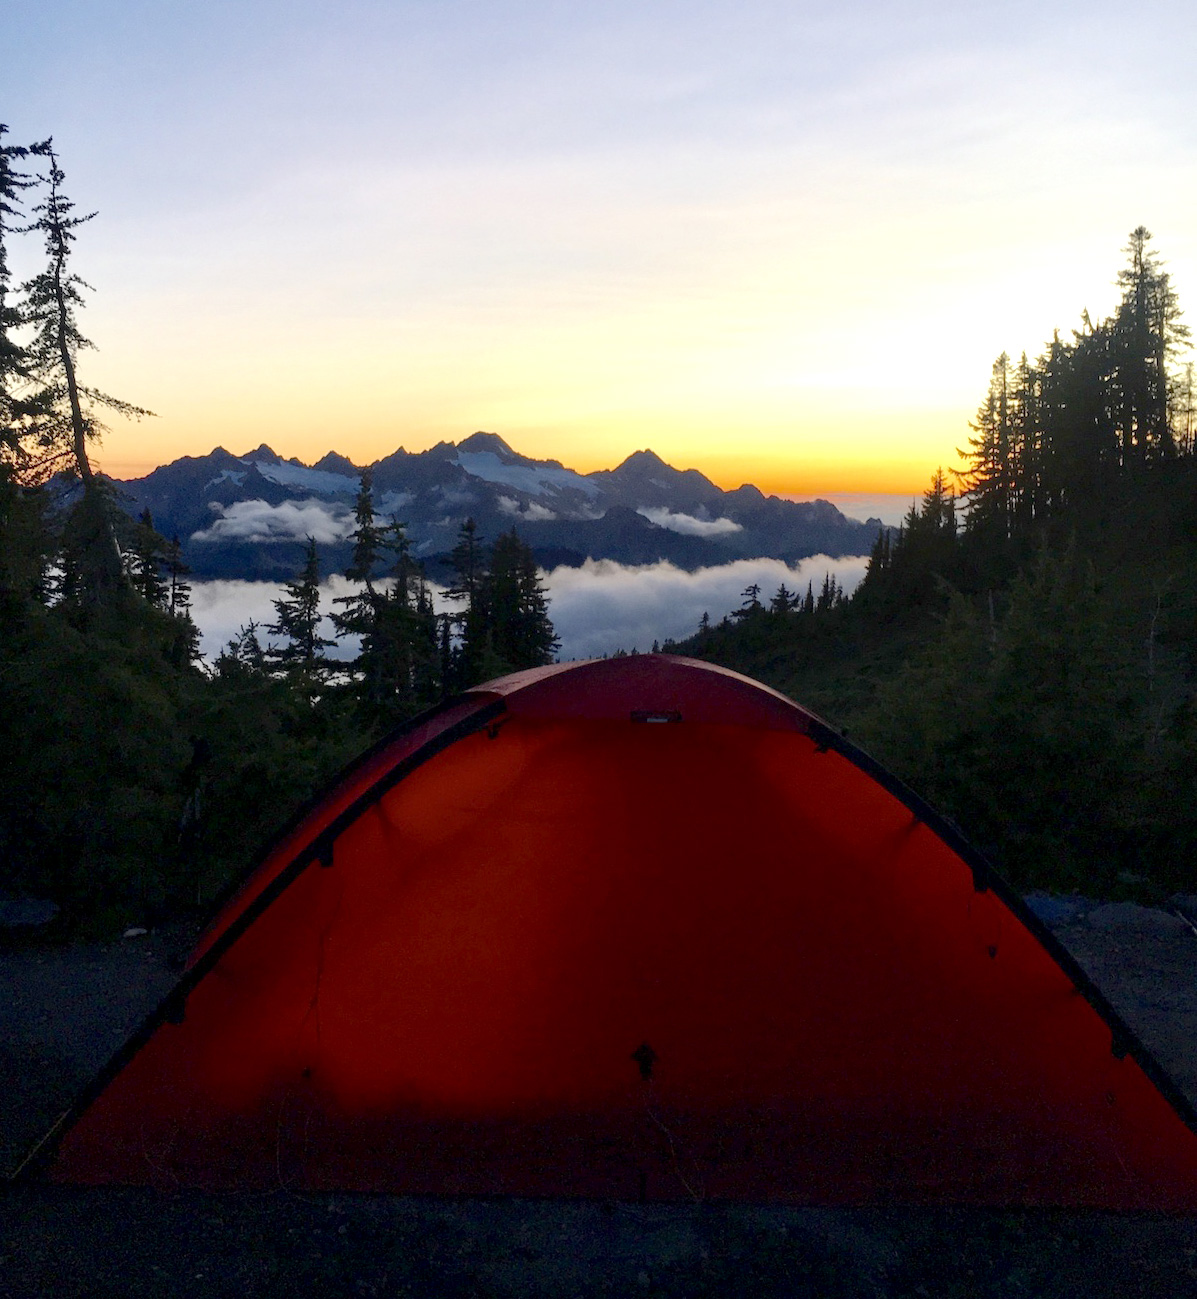 A sunset view of the North Cascades in Washington from the author's tent, September 2017. [Photo] Ana Beatriz Cholo collection